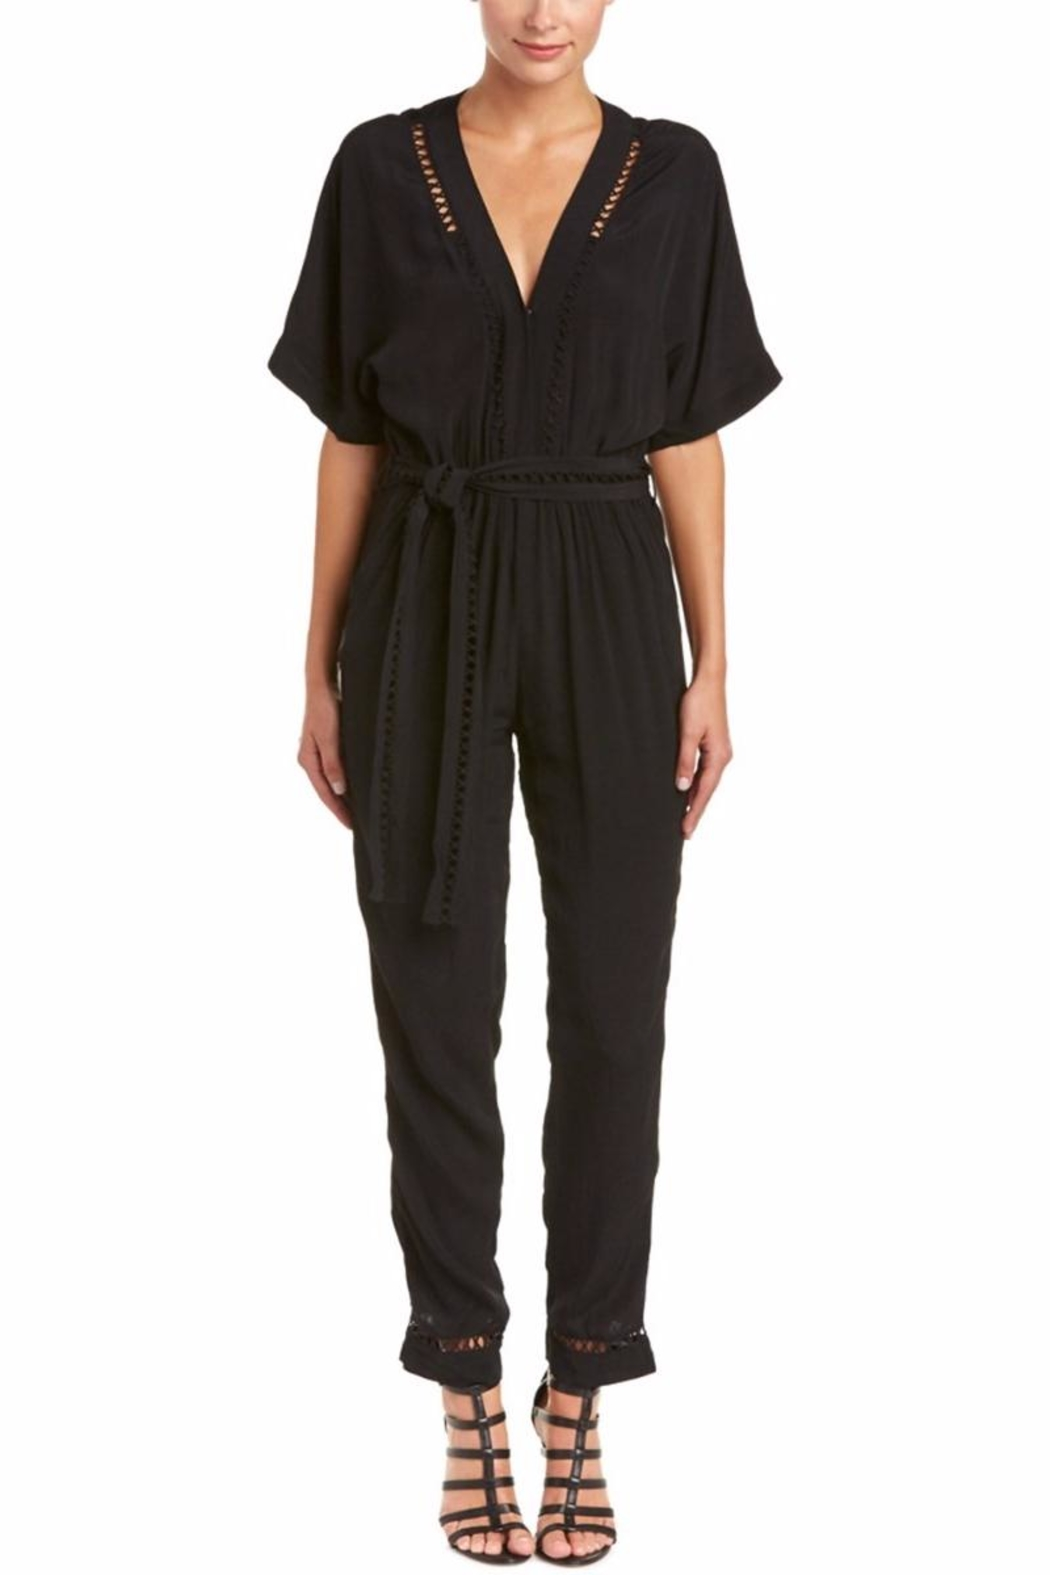 On The Road Lattice-Stitch Jumpsuit - Main Image